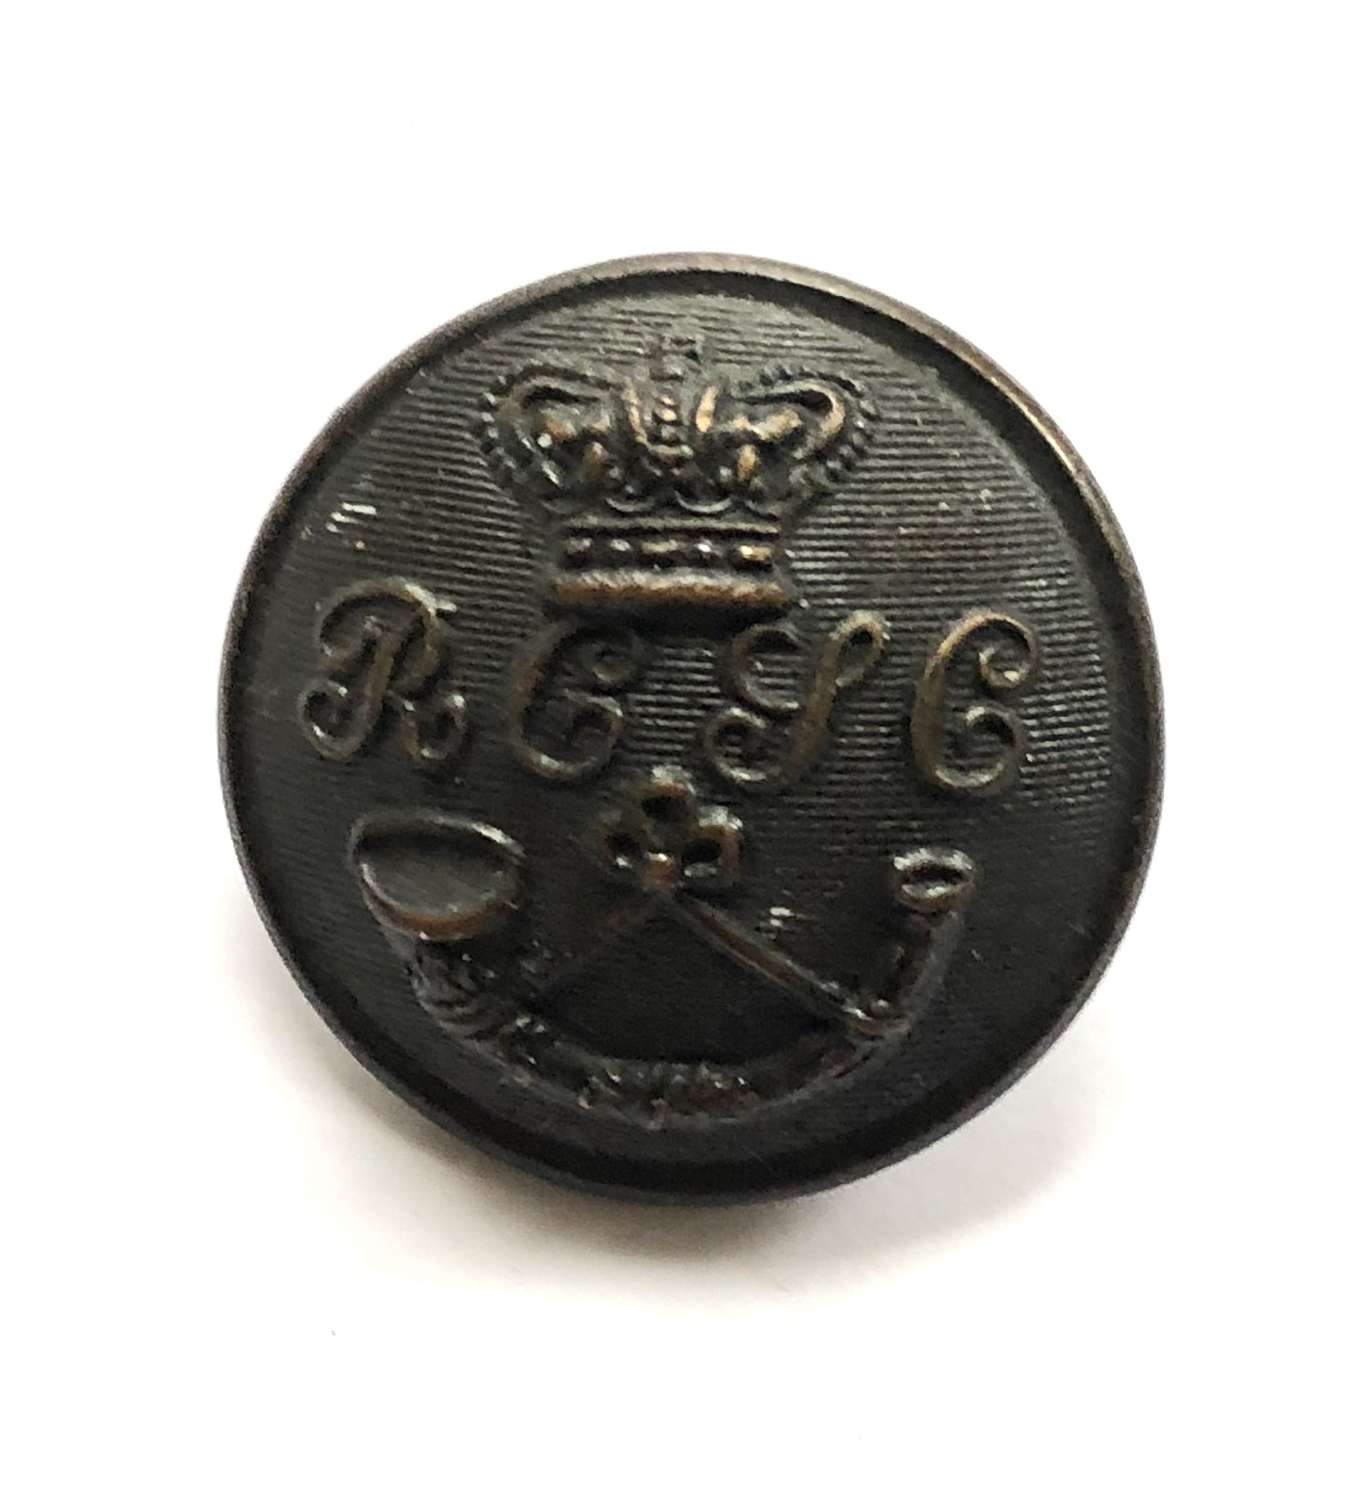 Ross, Caithness, Sutherland & Cromarty (Highland Rifle Militia) button